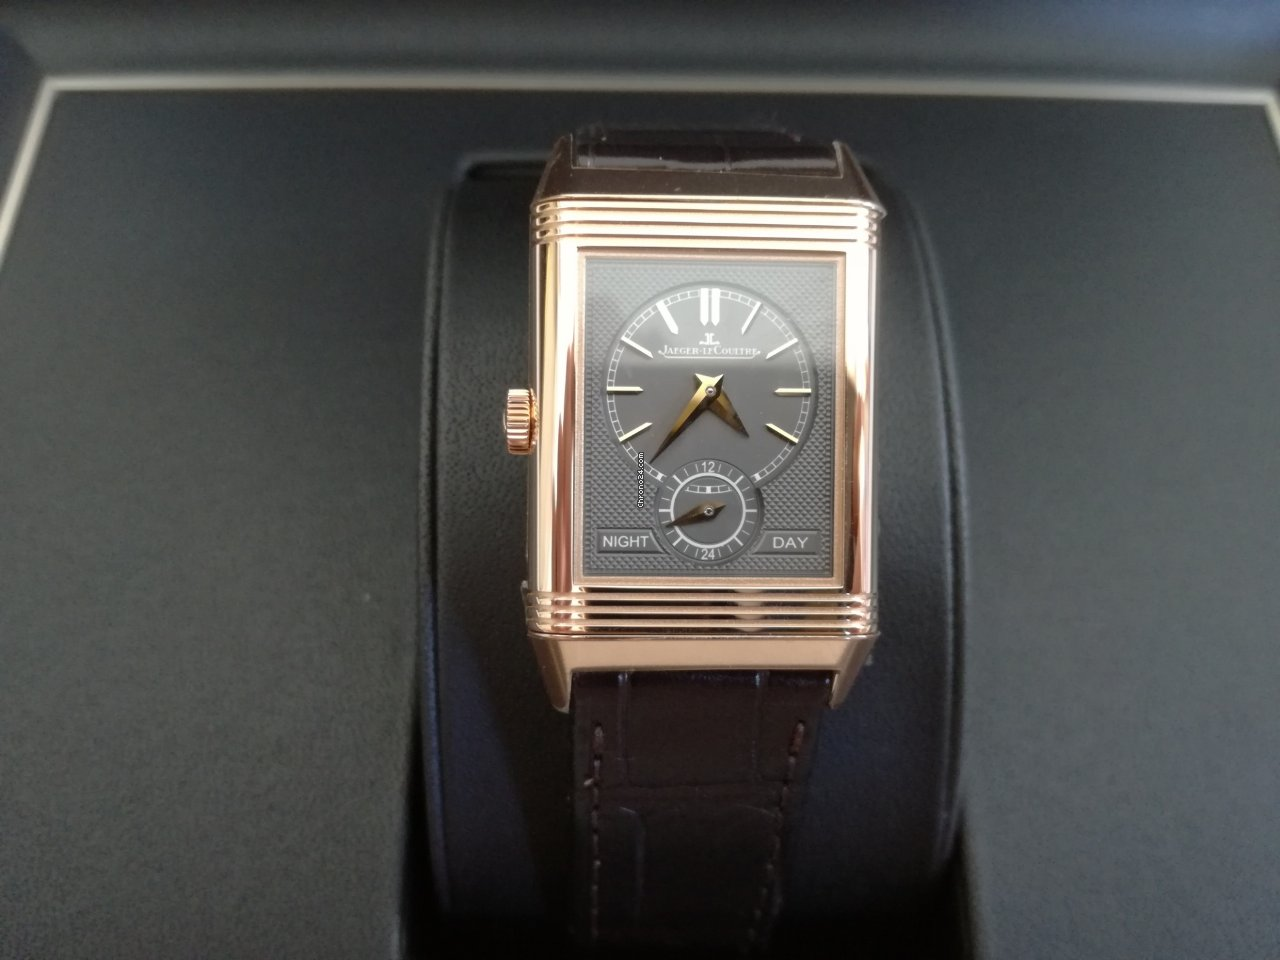 bf285b41241 New Jaeger-LeCoultre Reverso Duoface Watches for Sale - Explore a Wide  Selection at Chrono24